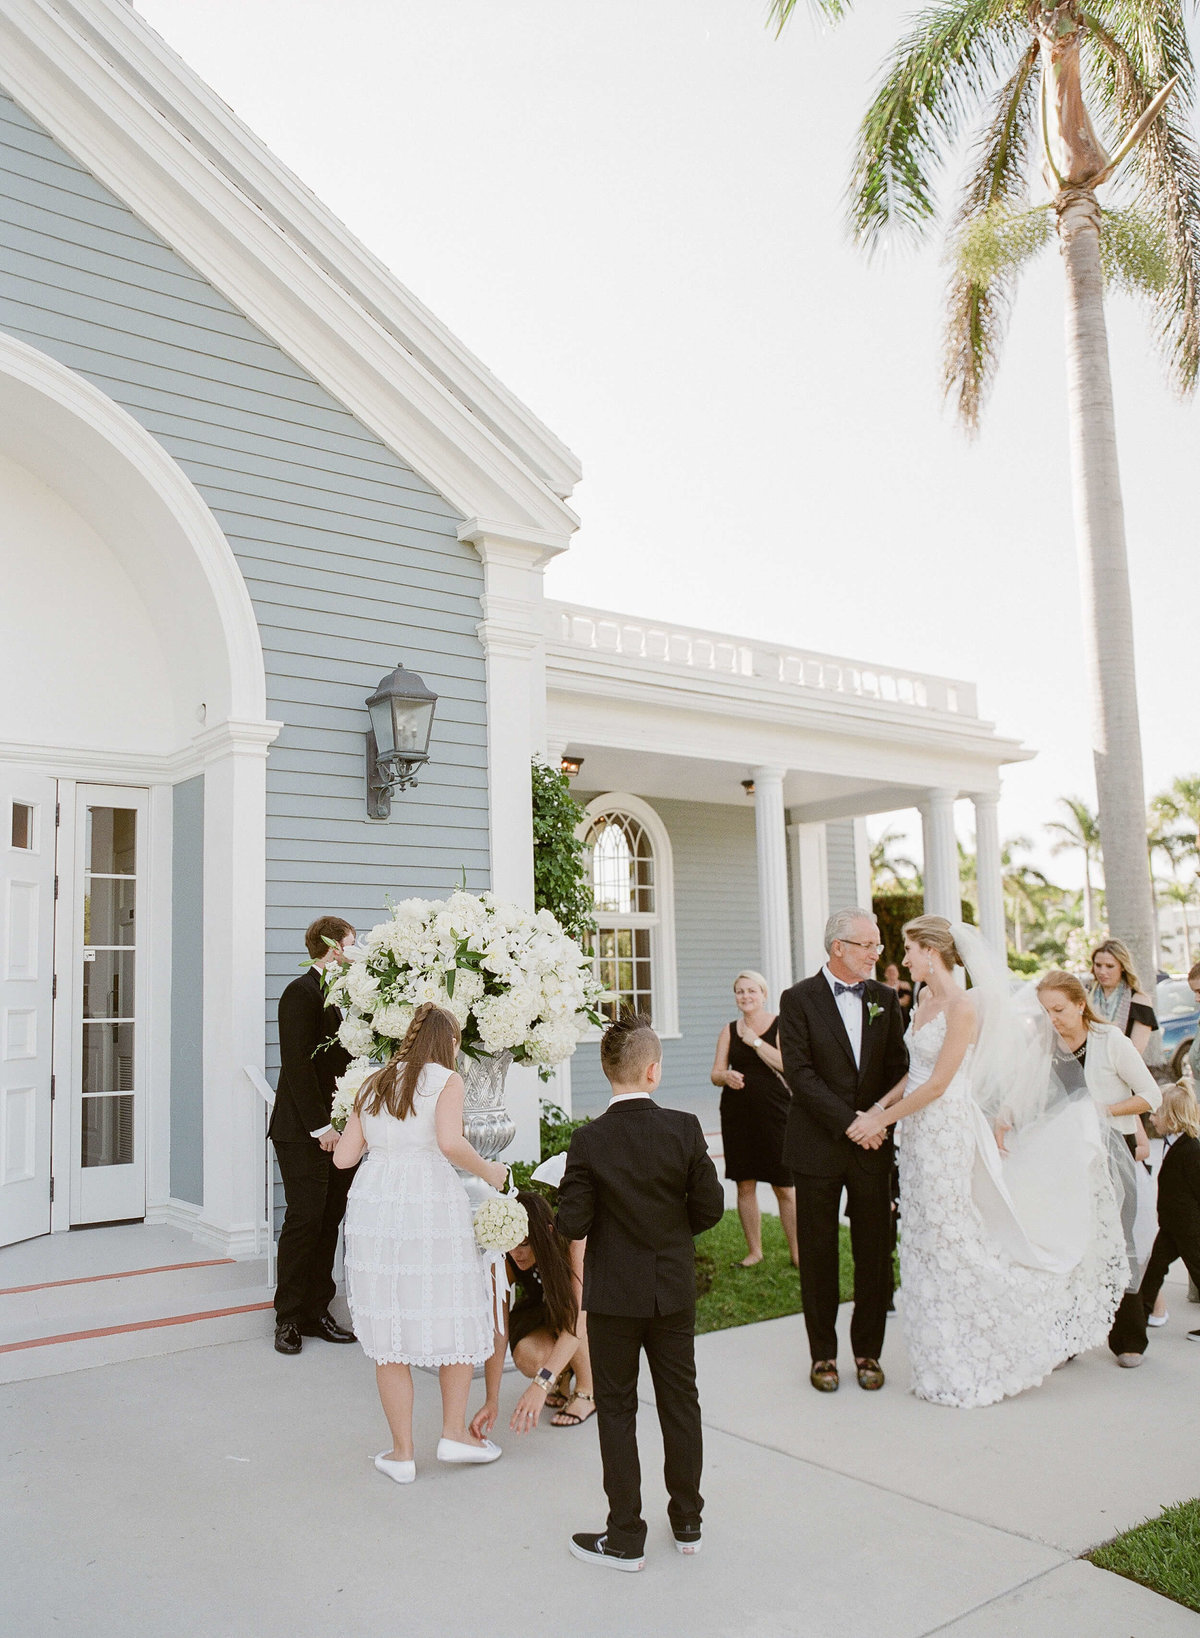 22-KTMerry-weddings-Royal-Poinciana-Chapel-exterior-Palm-Beach